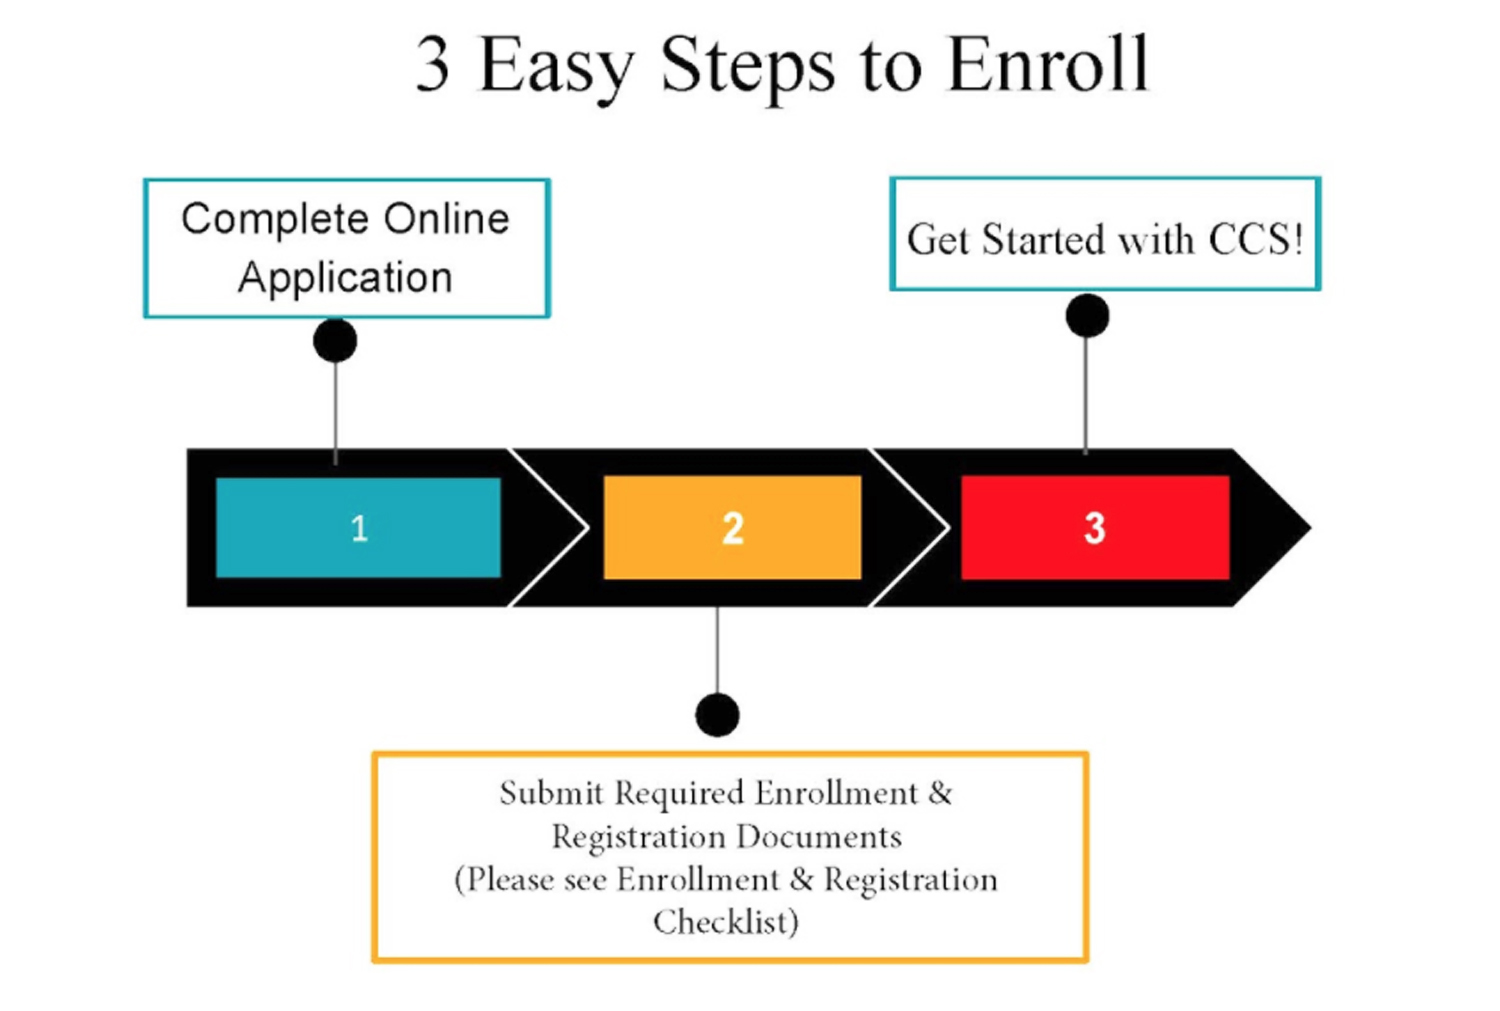 Enroll in 3 Easy Steps